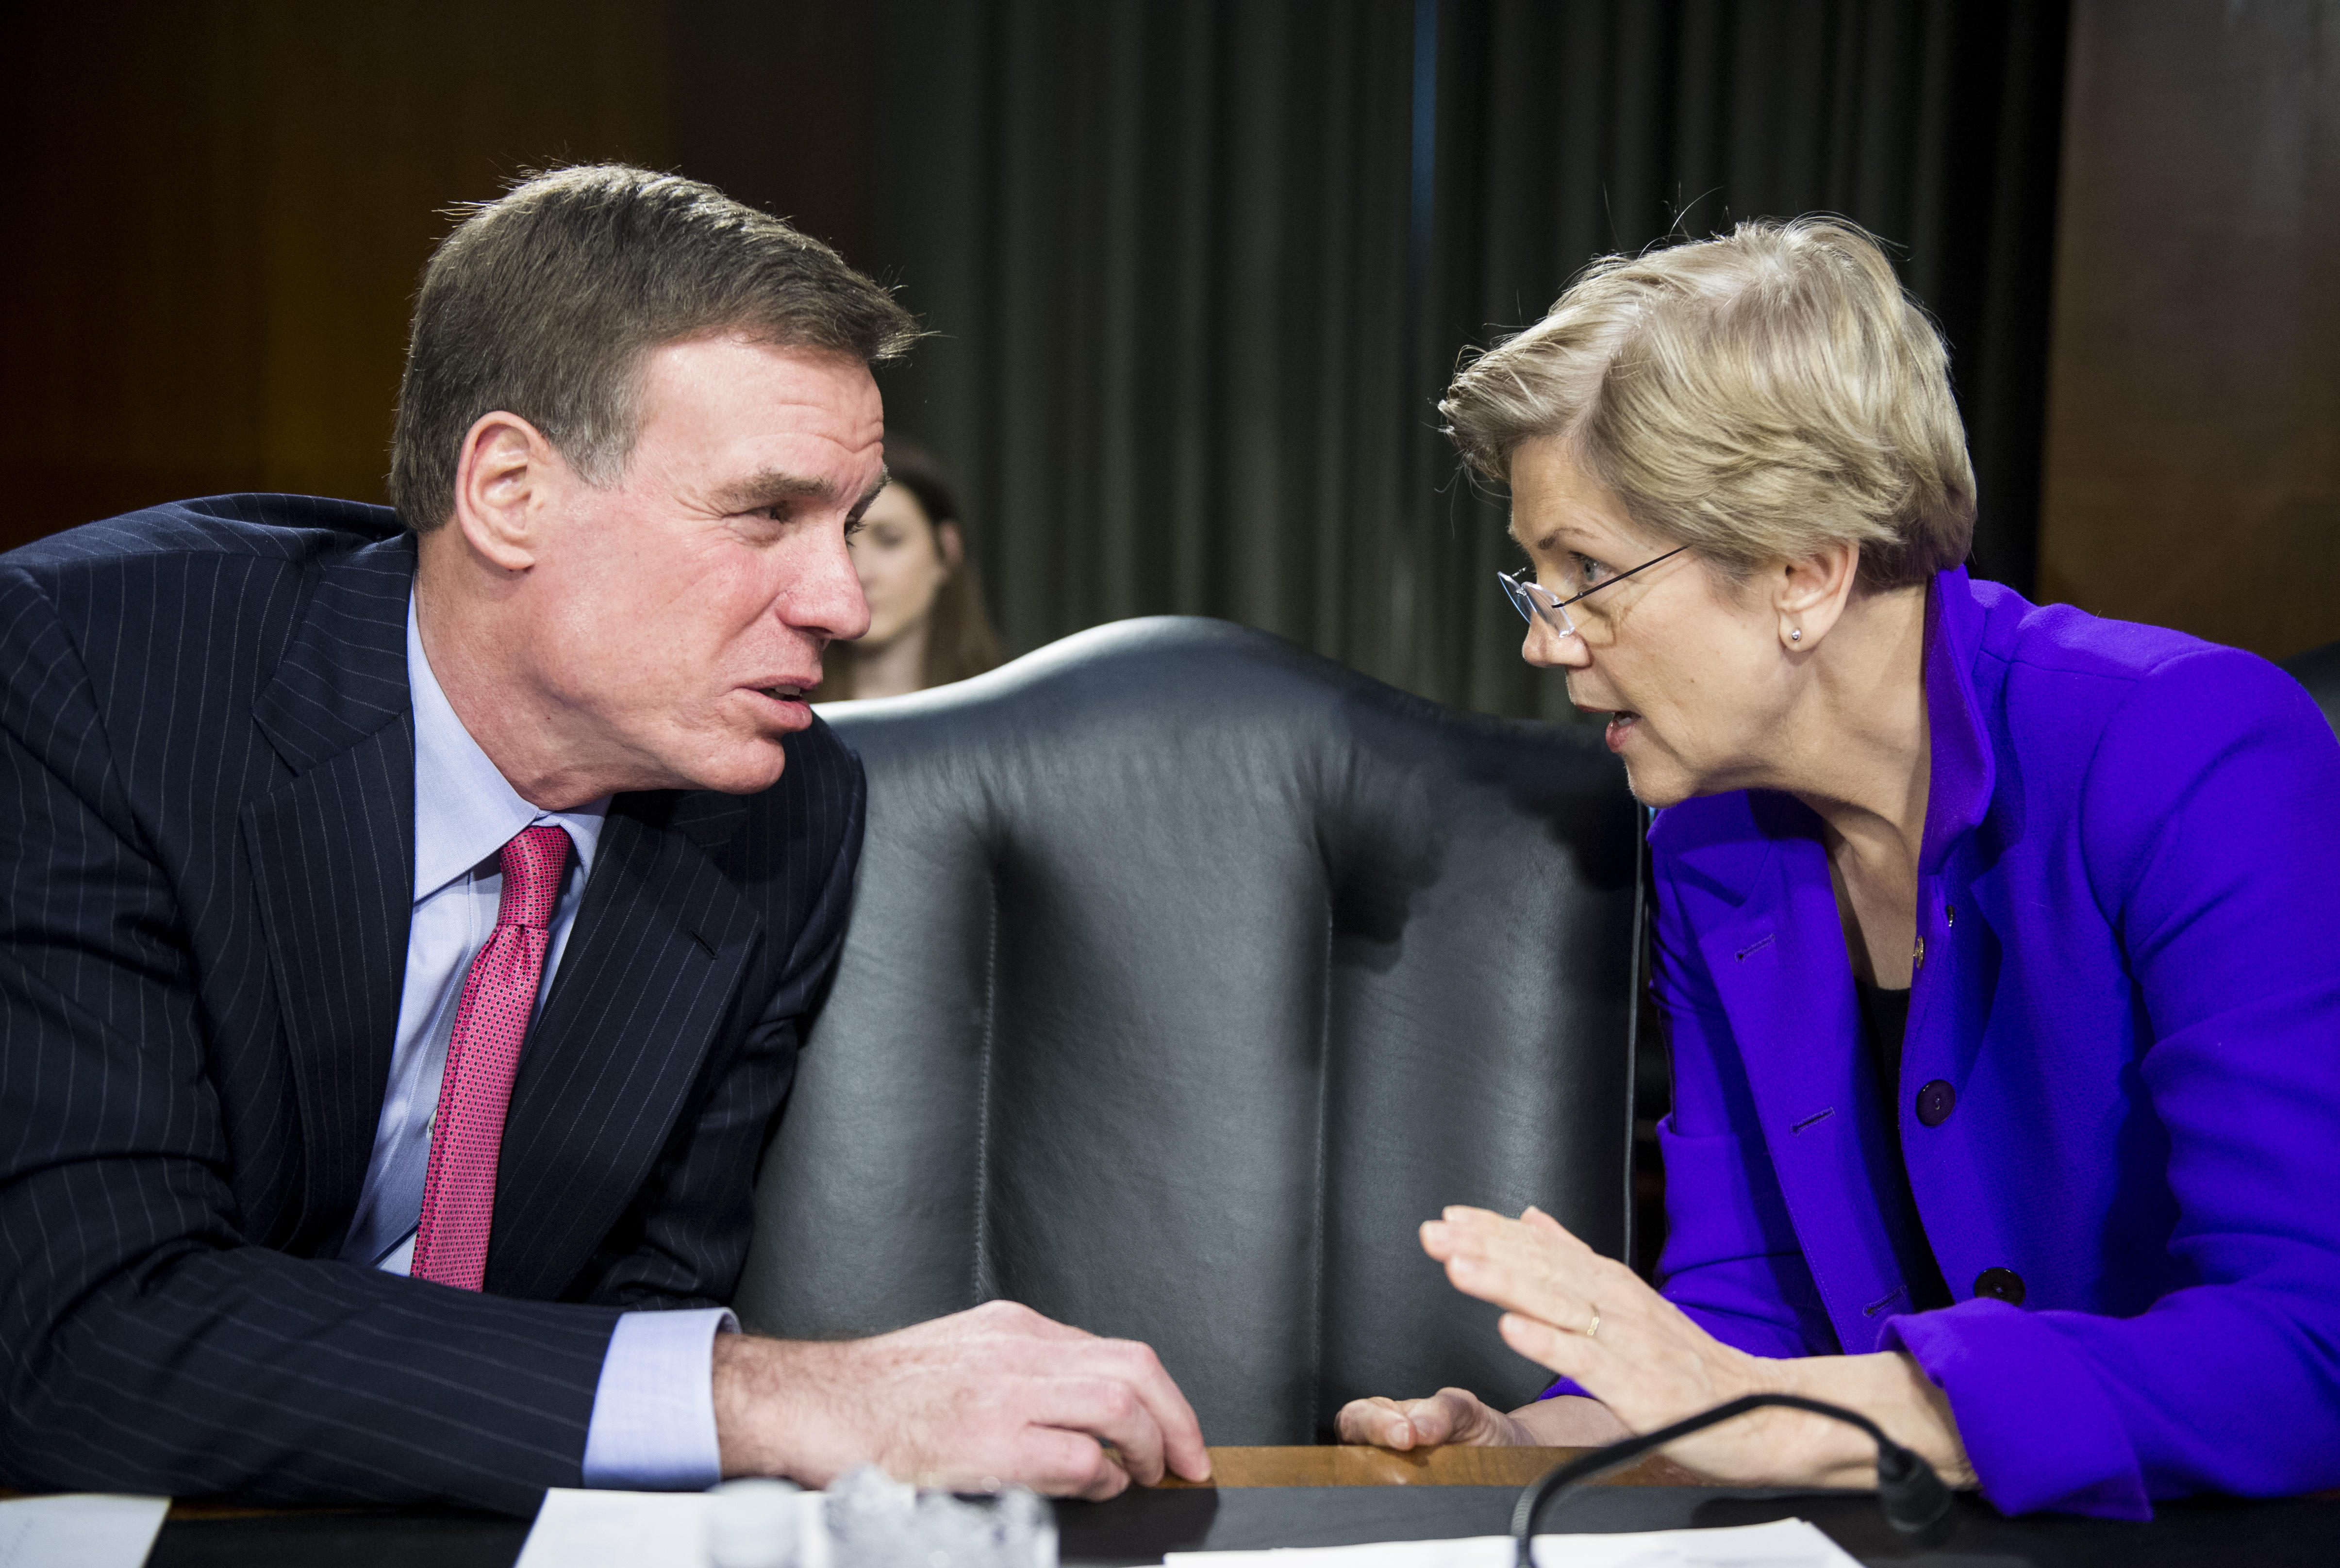 Sen. Mark Warner and Sen. Elizabeth Warren talk with each other in a Senate meeting room before the start of a hearing in 2015.